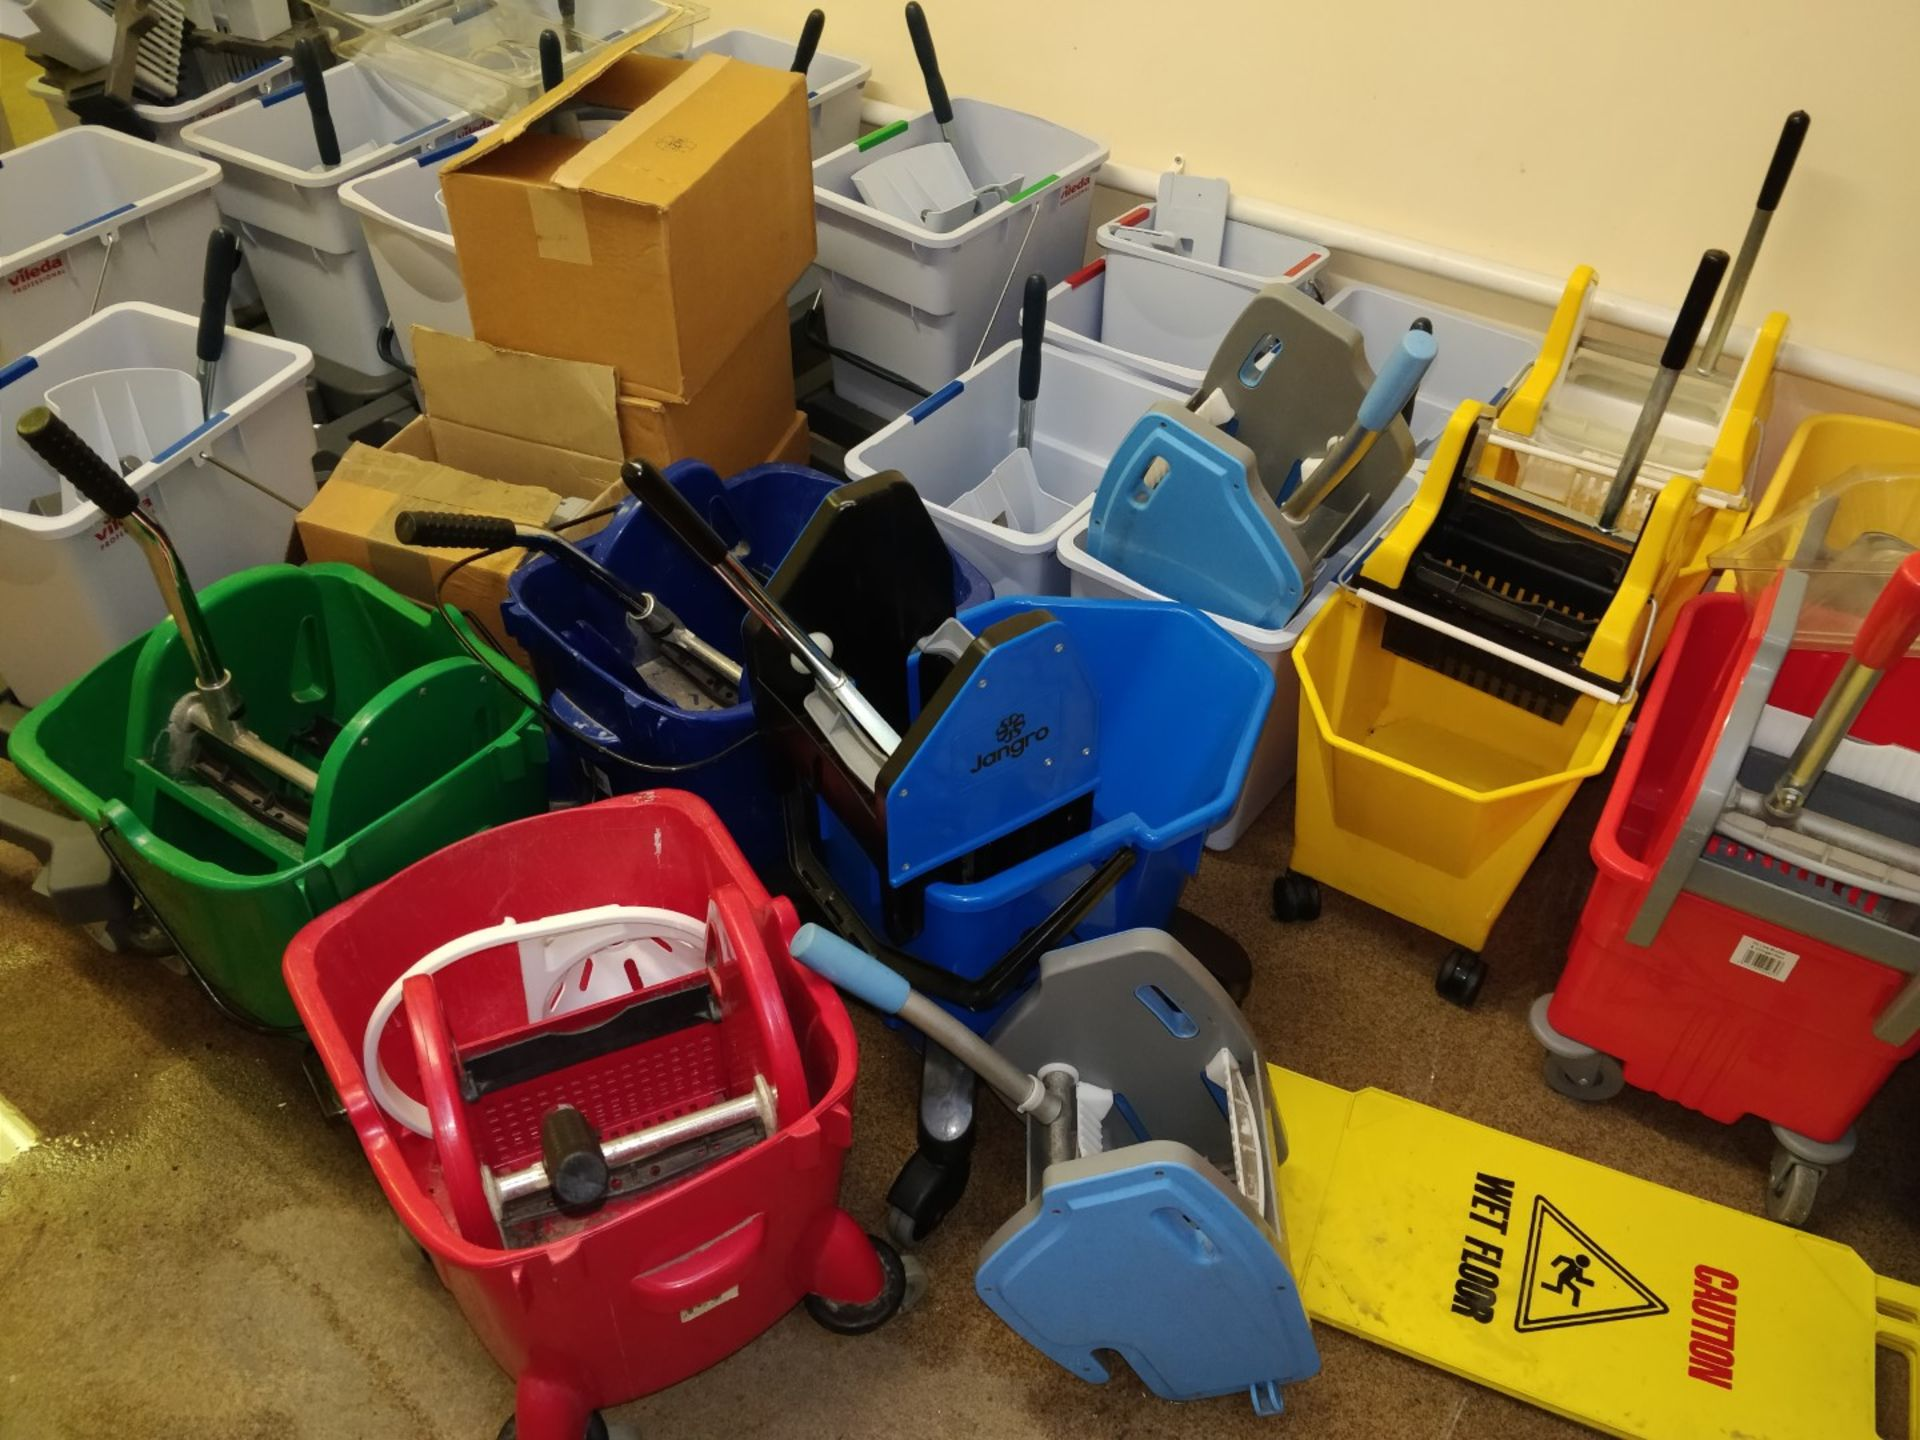 Lot 19 - 27 x Commercial Mop Buckets With Accessories - Ref B2 CL409 - Location: Wakefield WF16Collections: